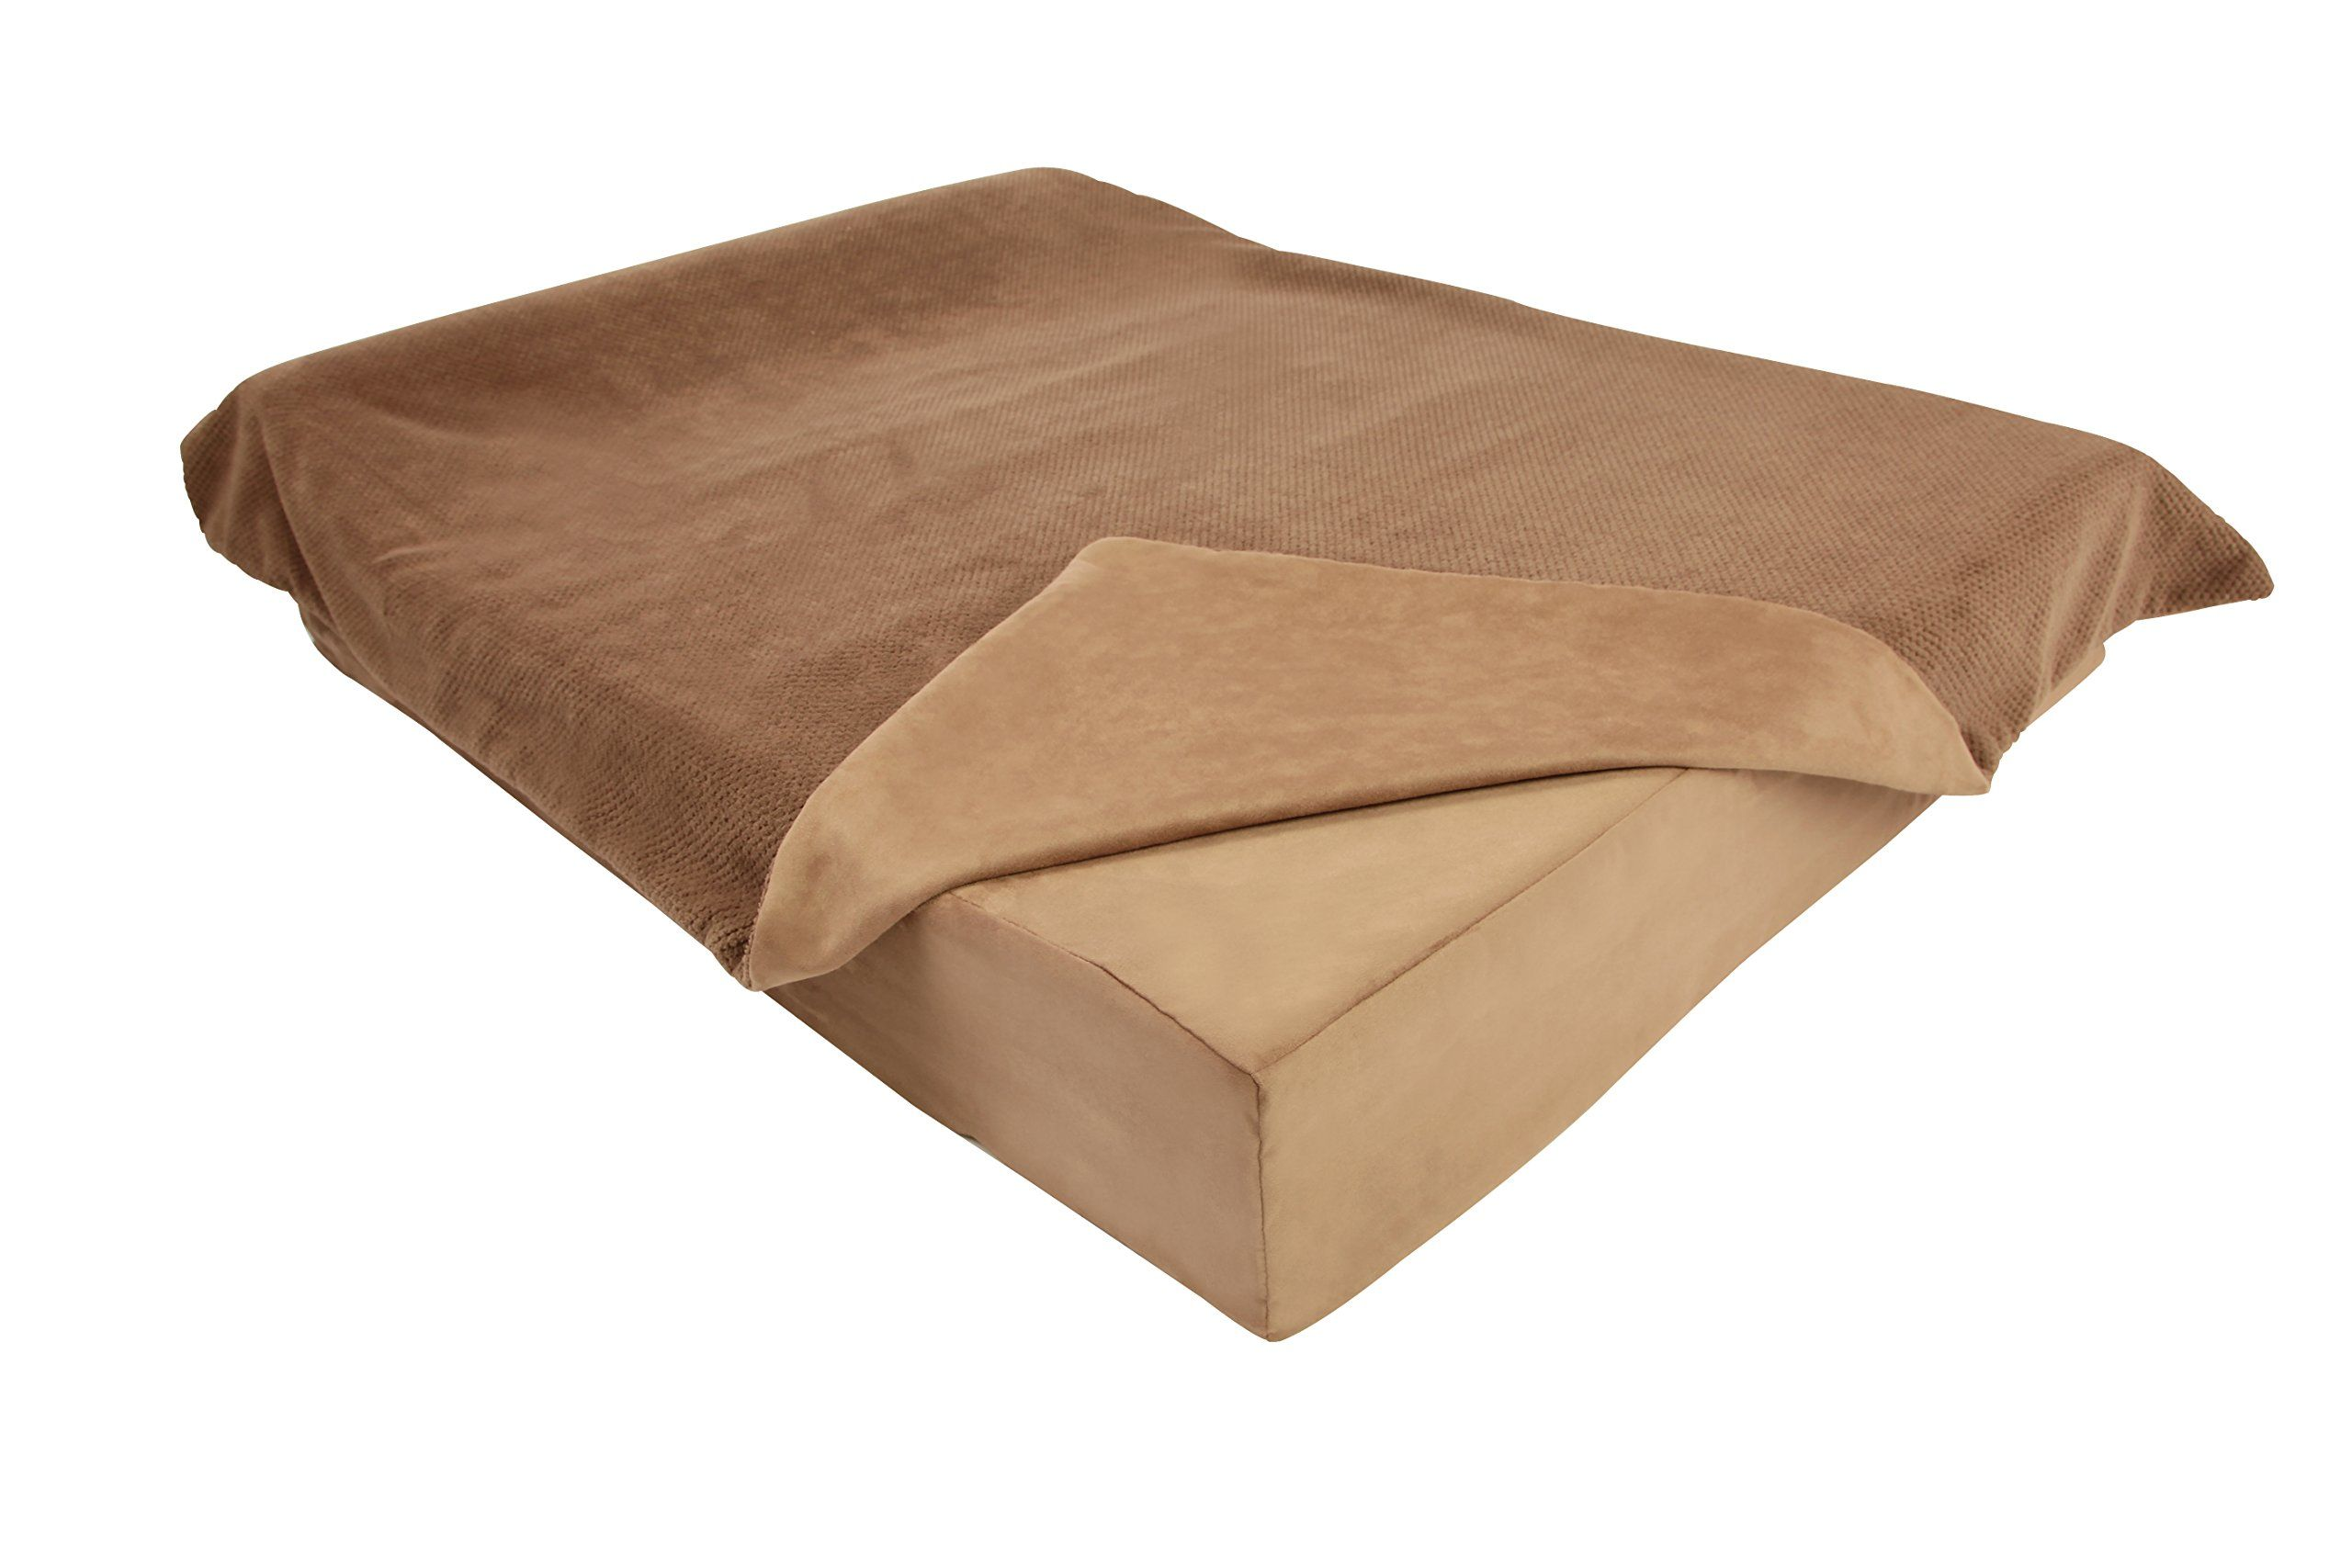 Big Blankie Large Khaki Soft Plush Reversible Dog Blanket